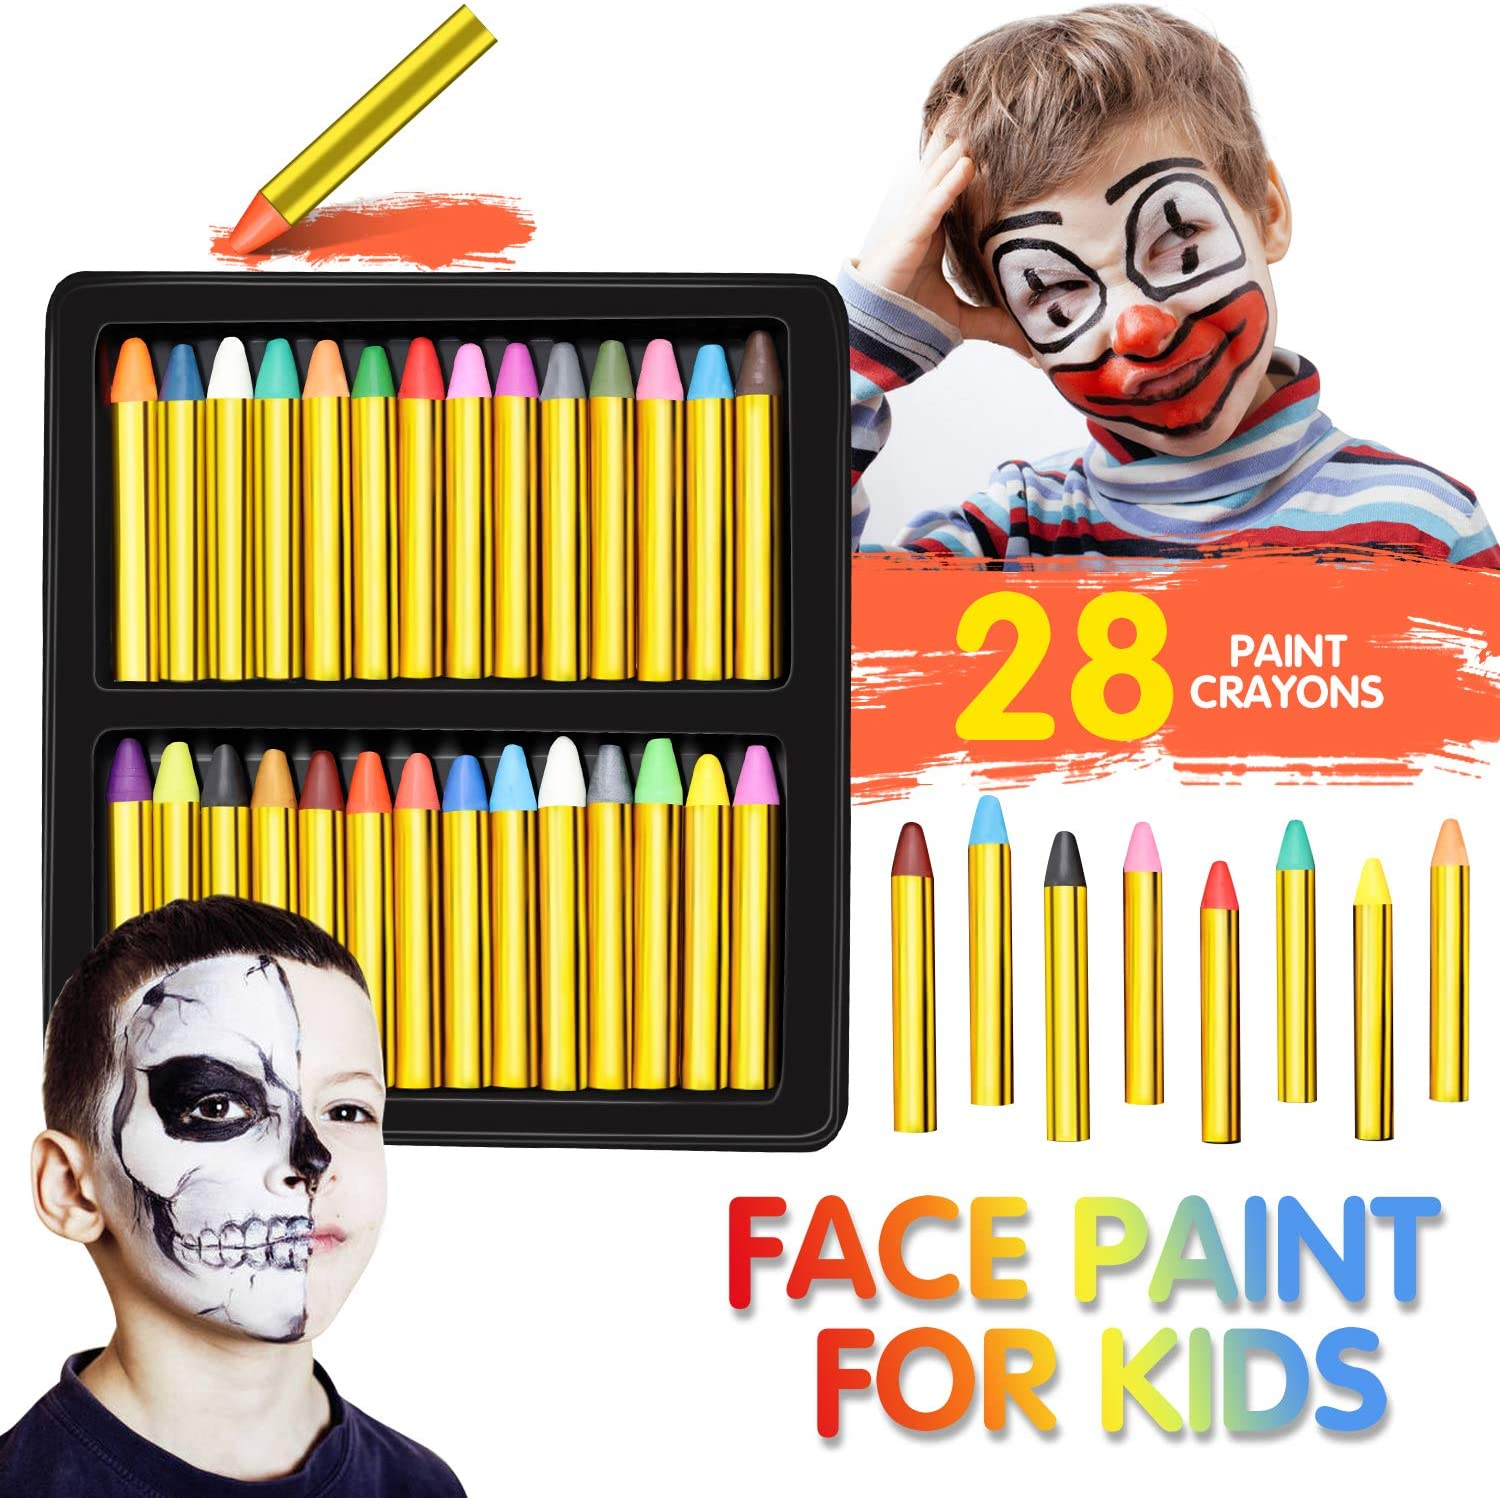 Face Paint, Panvox 28 Colors Crayons Body Face Painting Kits for Kids with No Toxic for Halloween